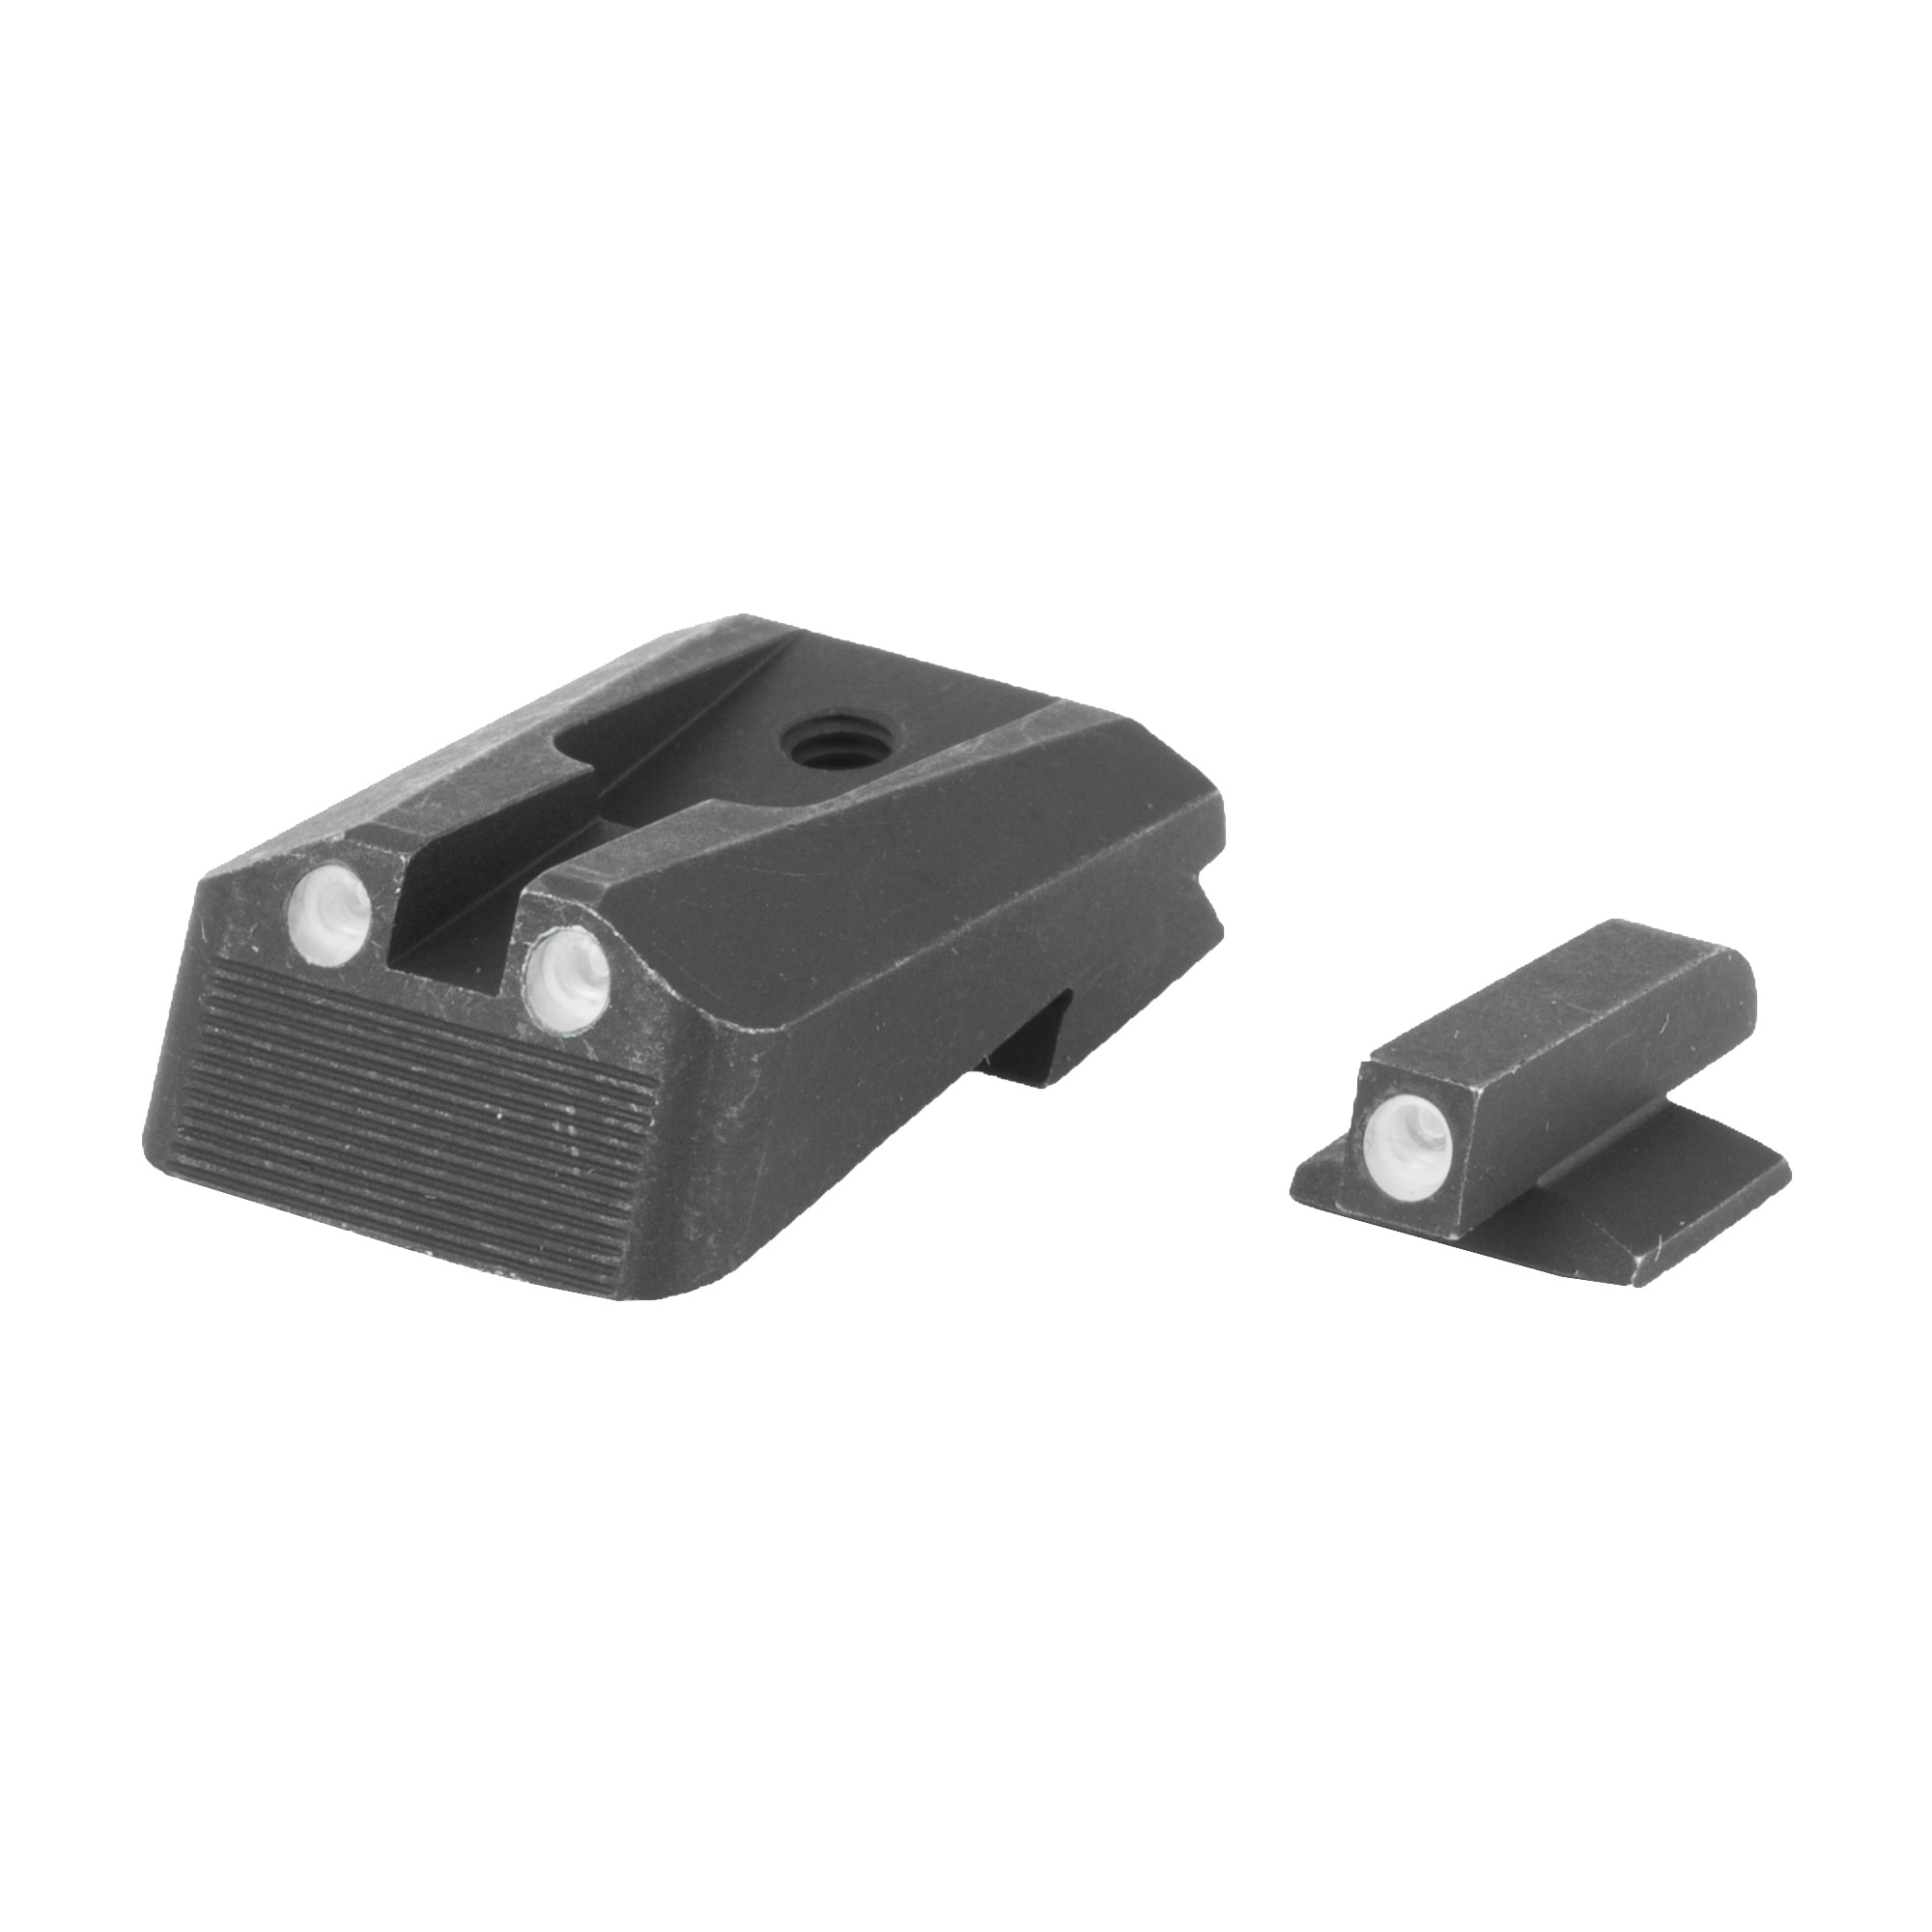 Meprolight Tru-Dot Night Sight Tactical Wedge for Kimber Custom Compact & Ultra Green